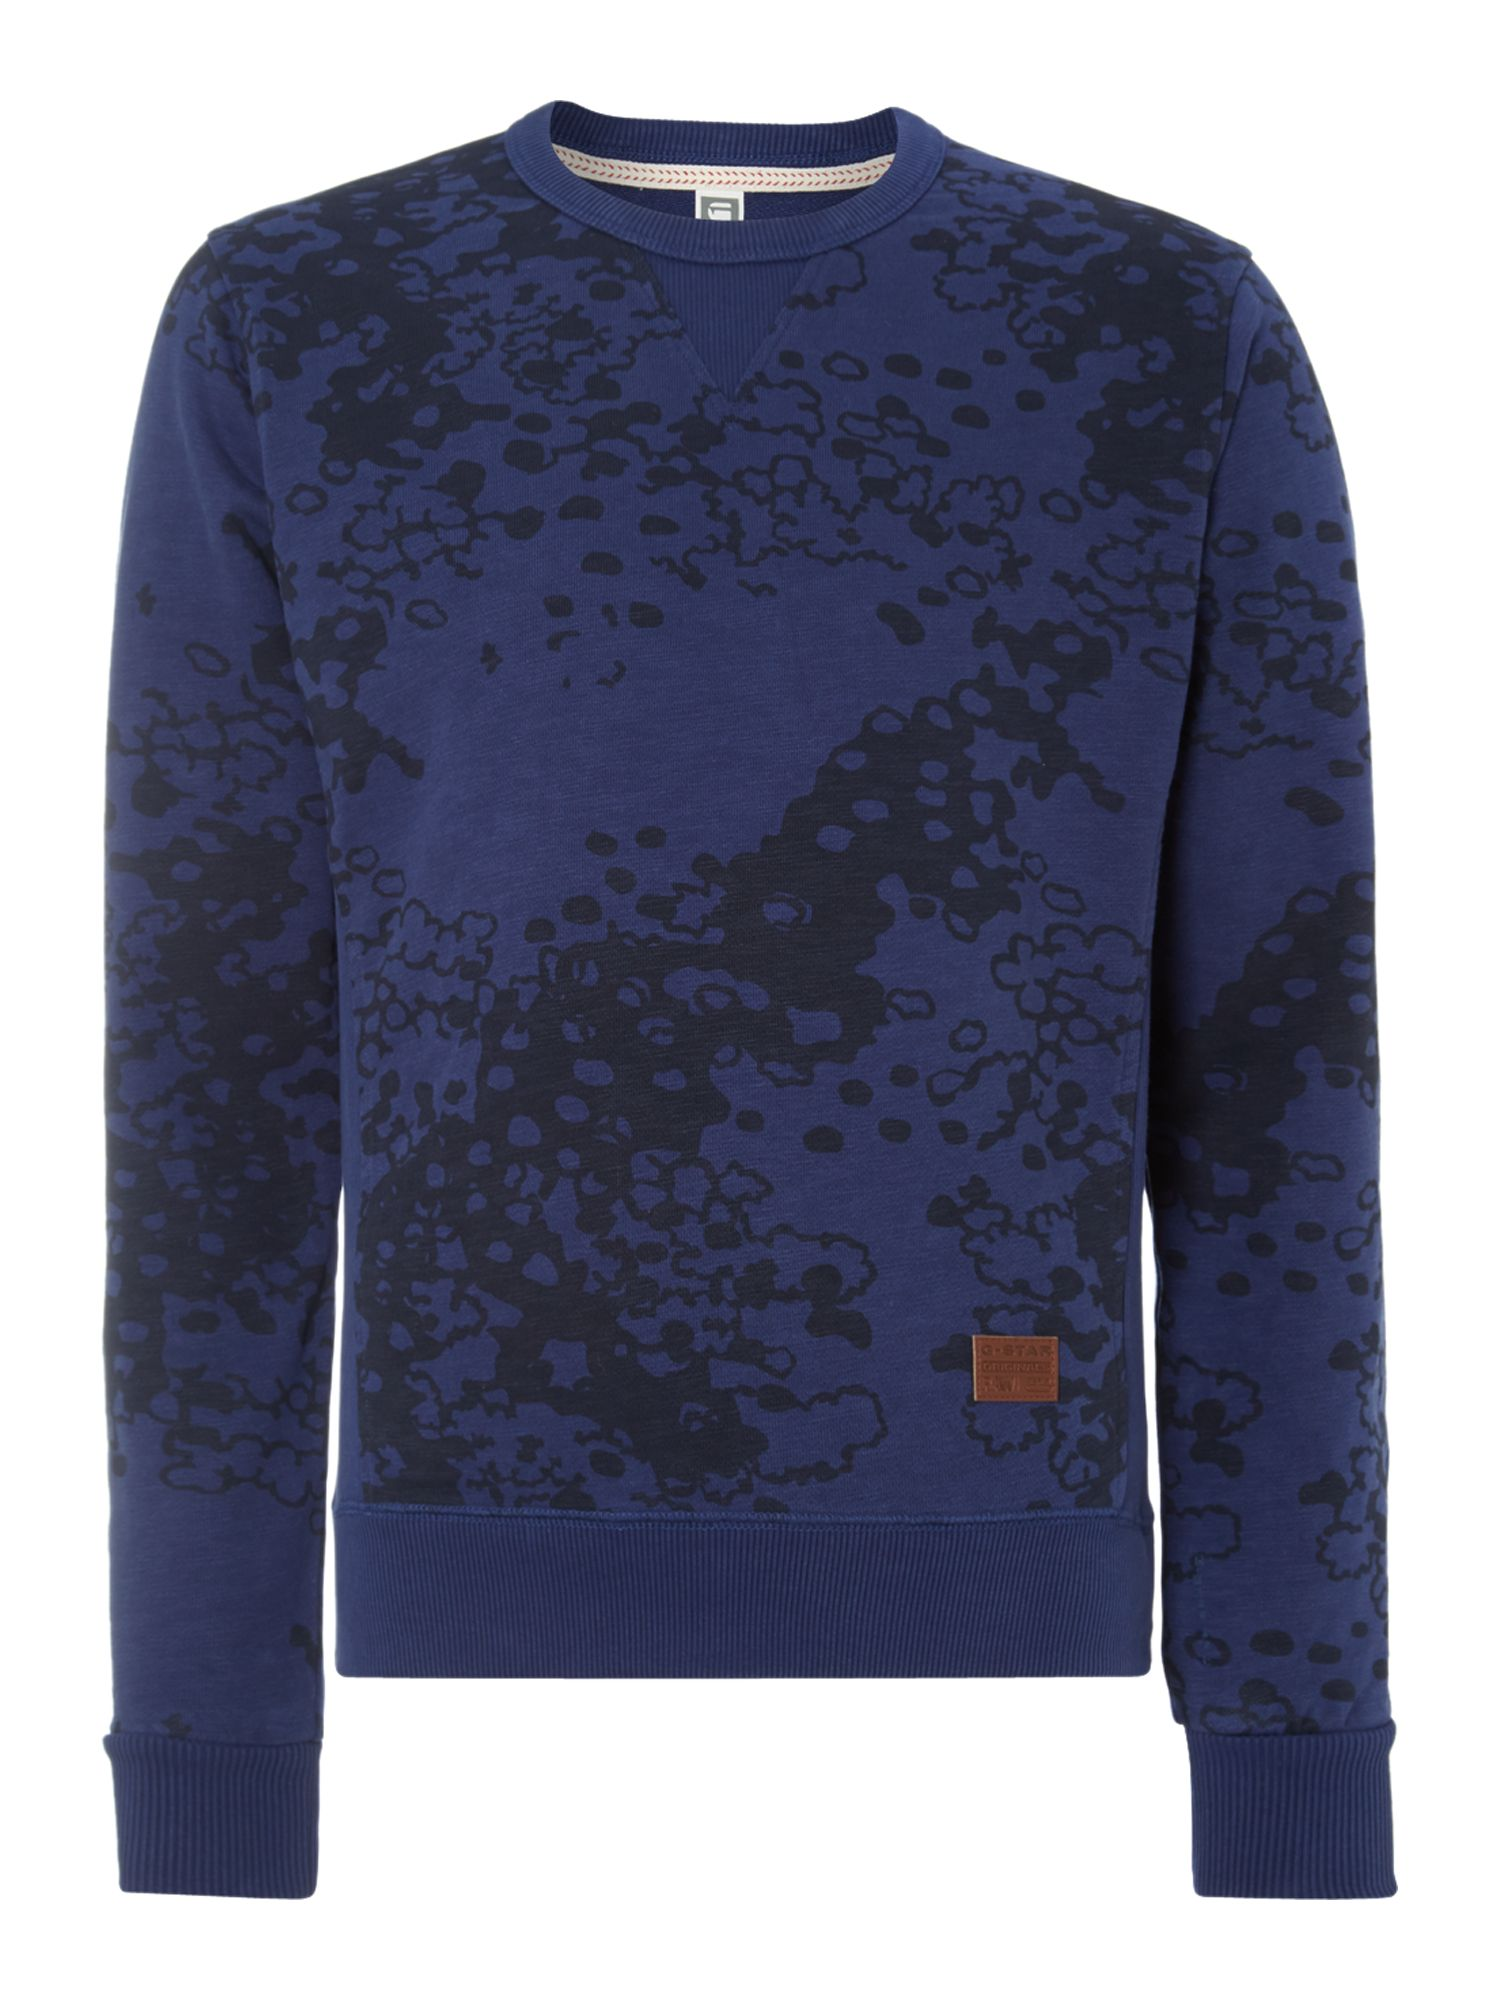 Spray on print sweatshirt